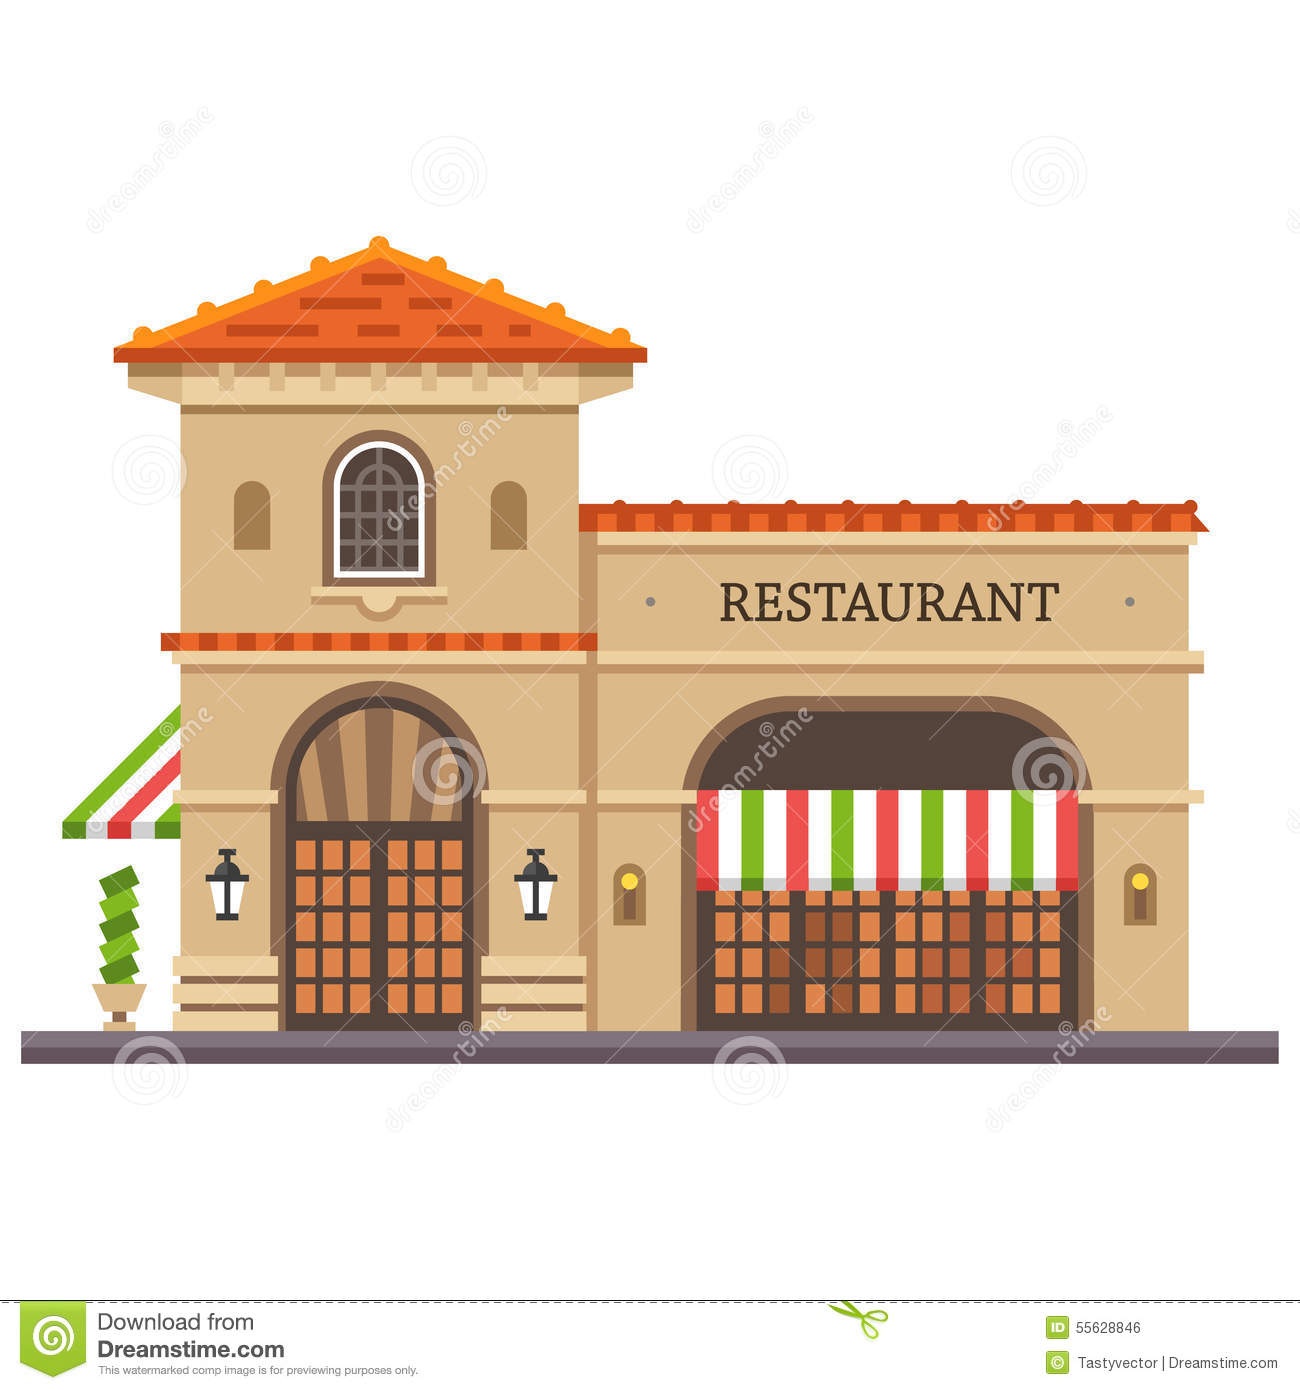 restaurant clipart download - photo #37